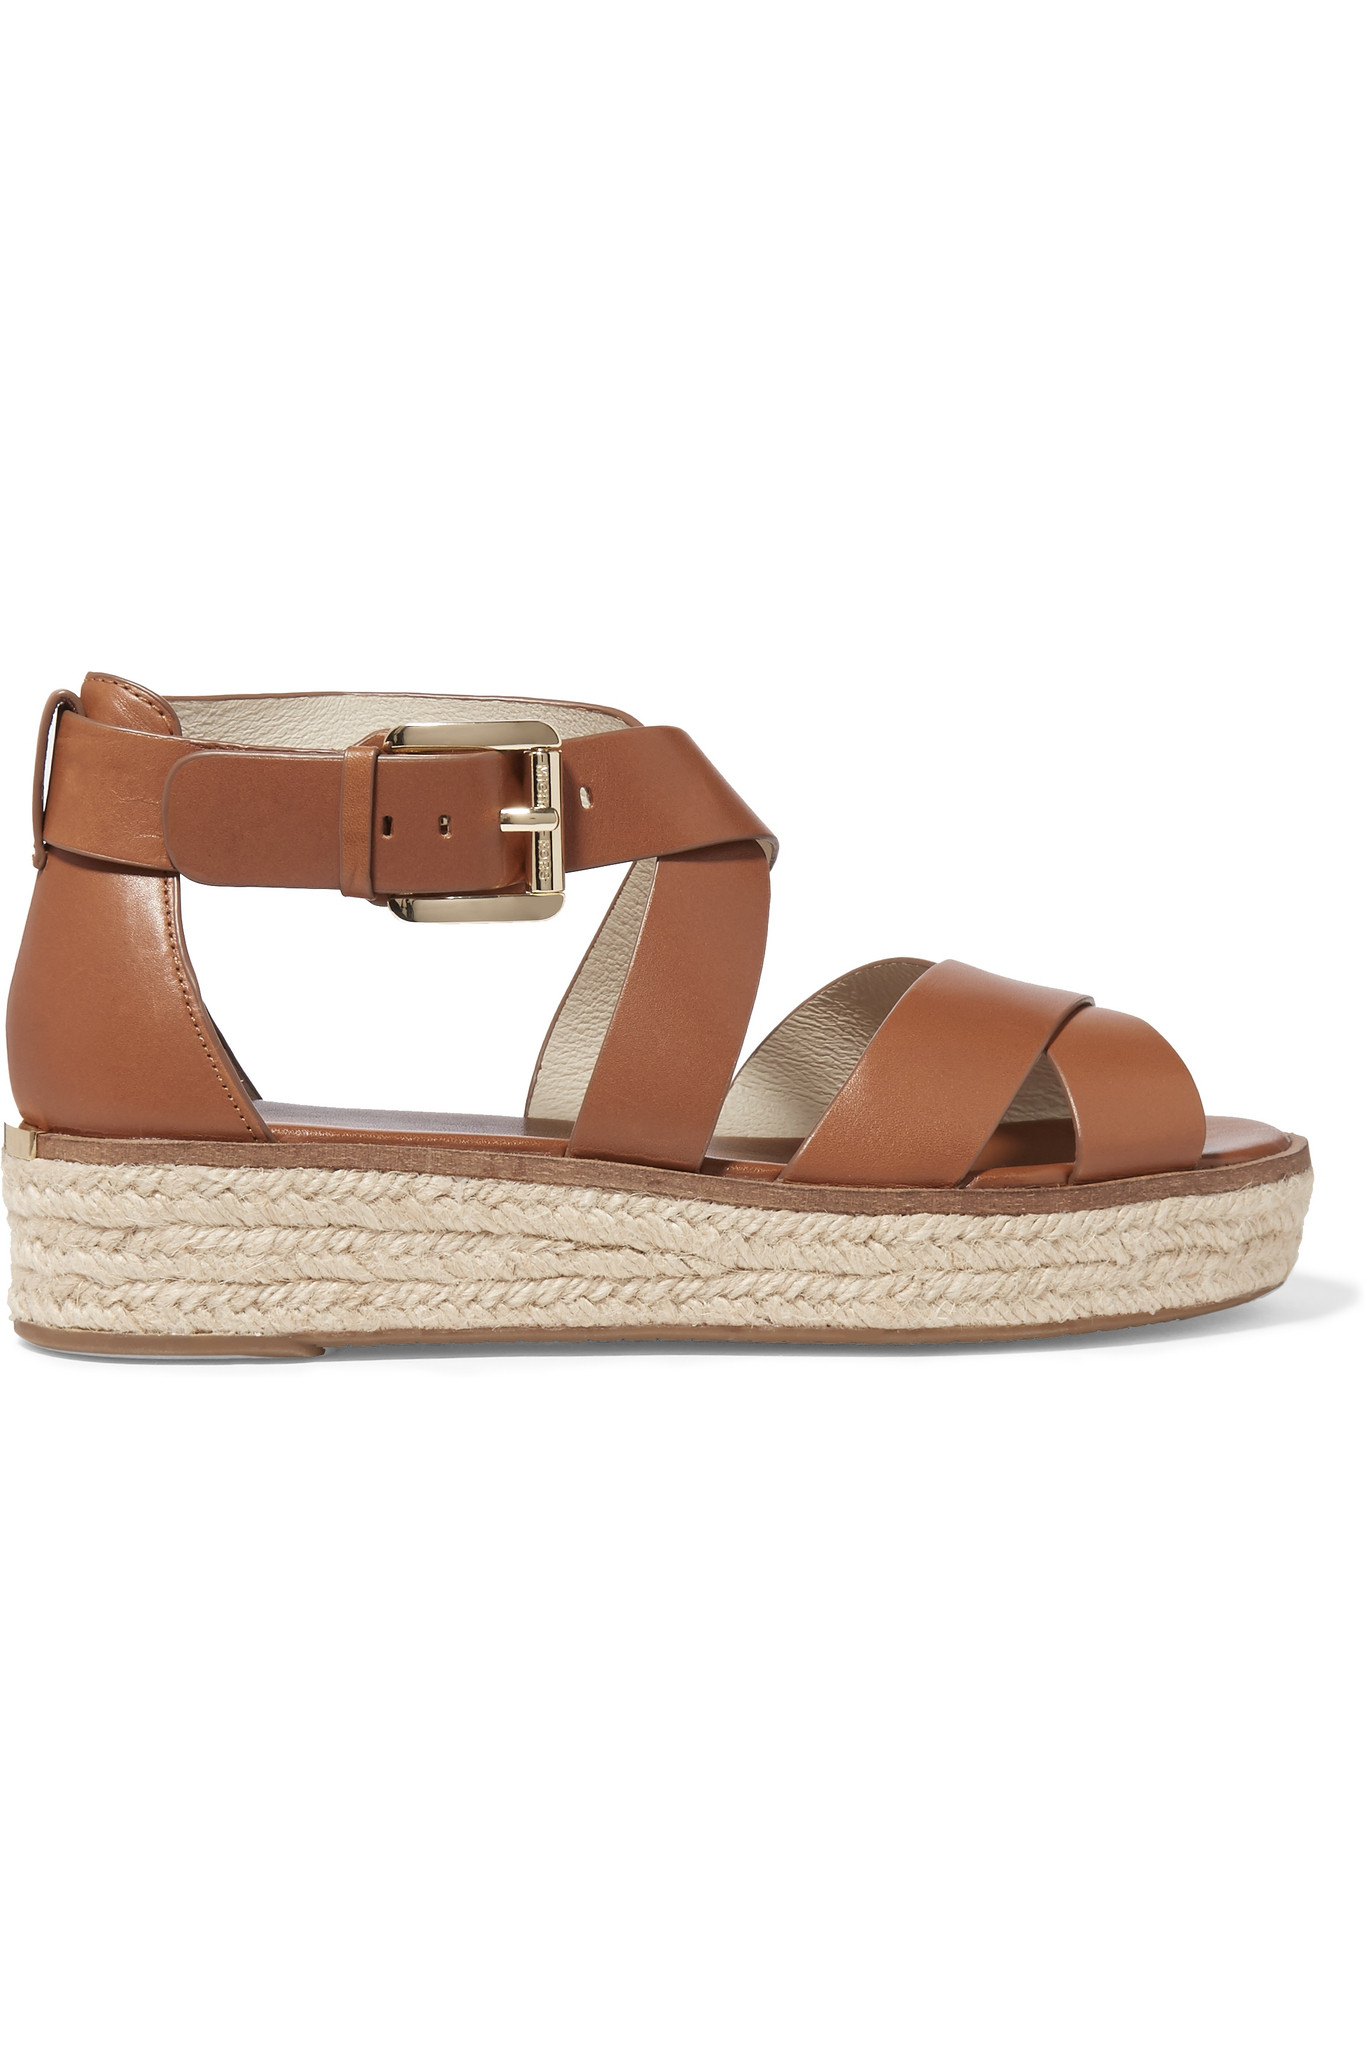 b3fa4101c292 MICHAEL Michael Kors Darby Leather Espadrille Platform Sandals in ...